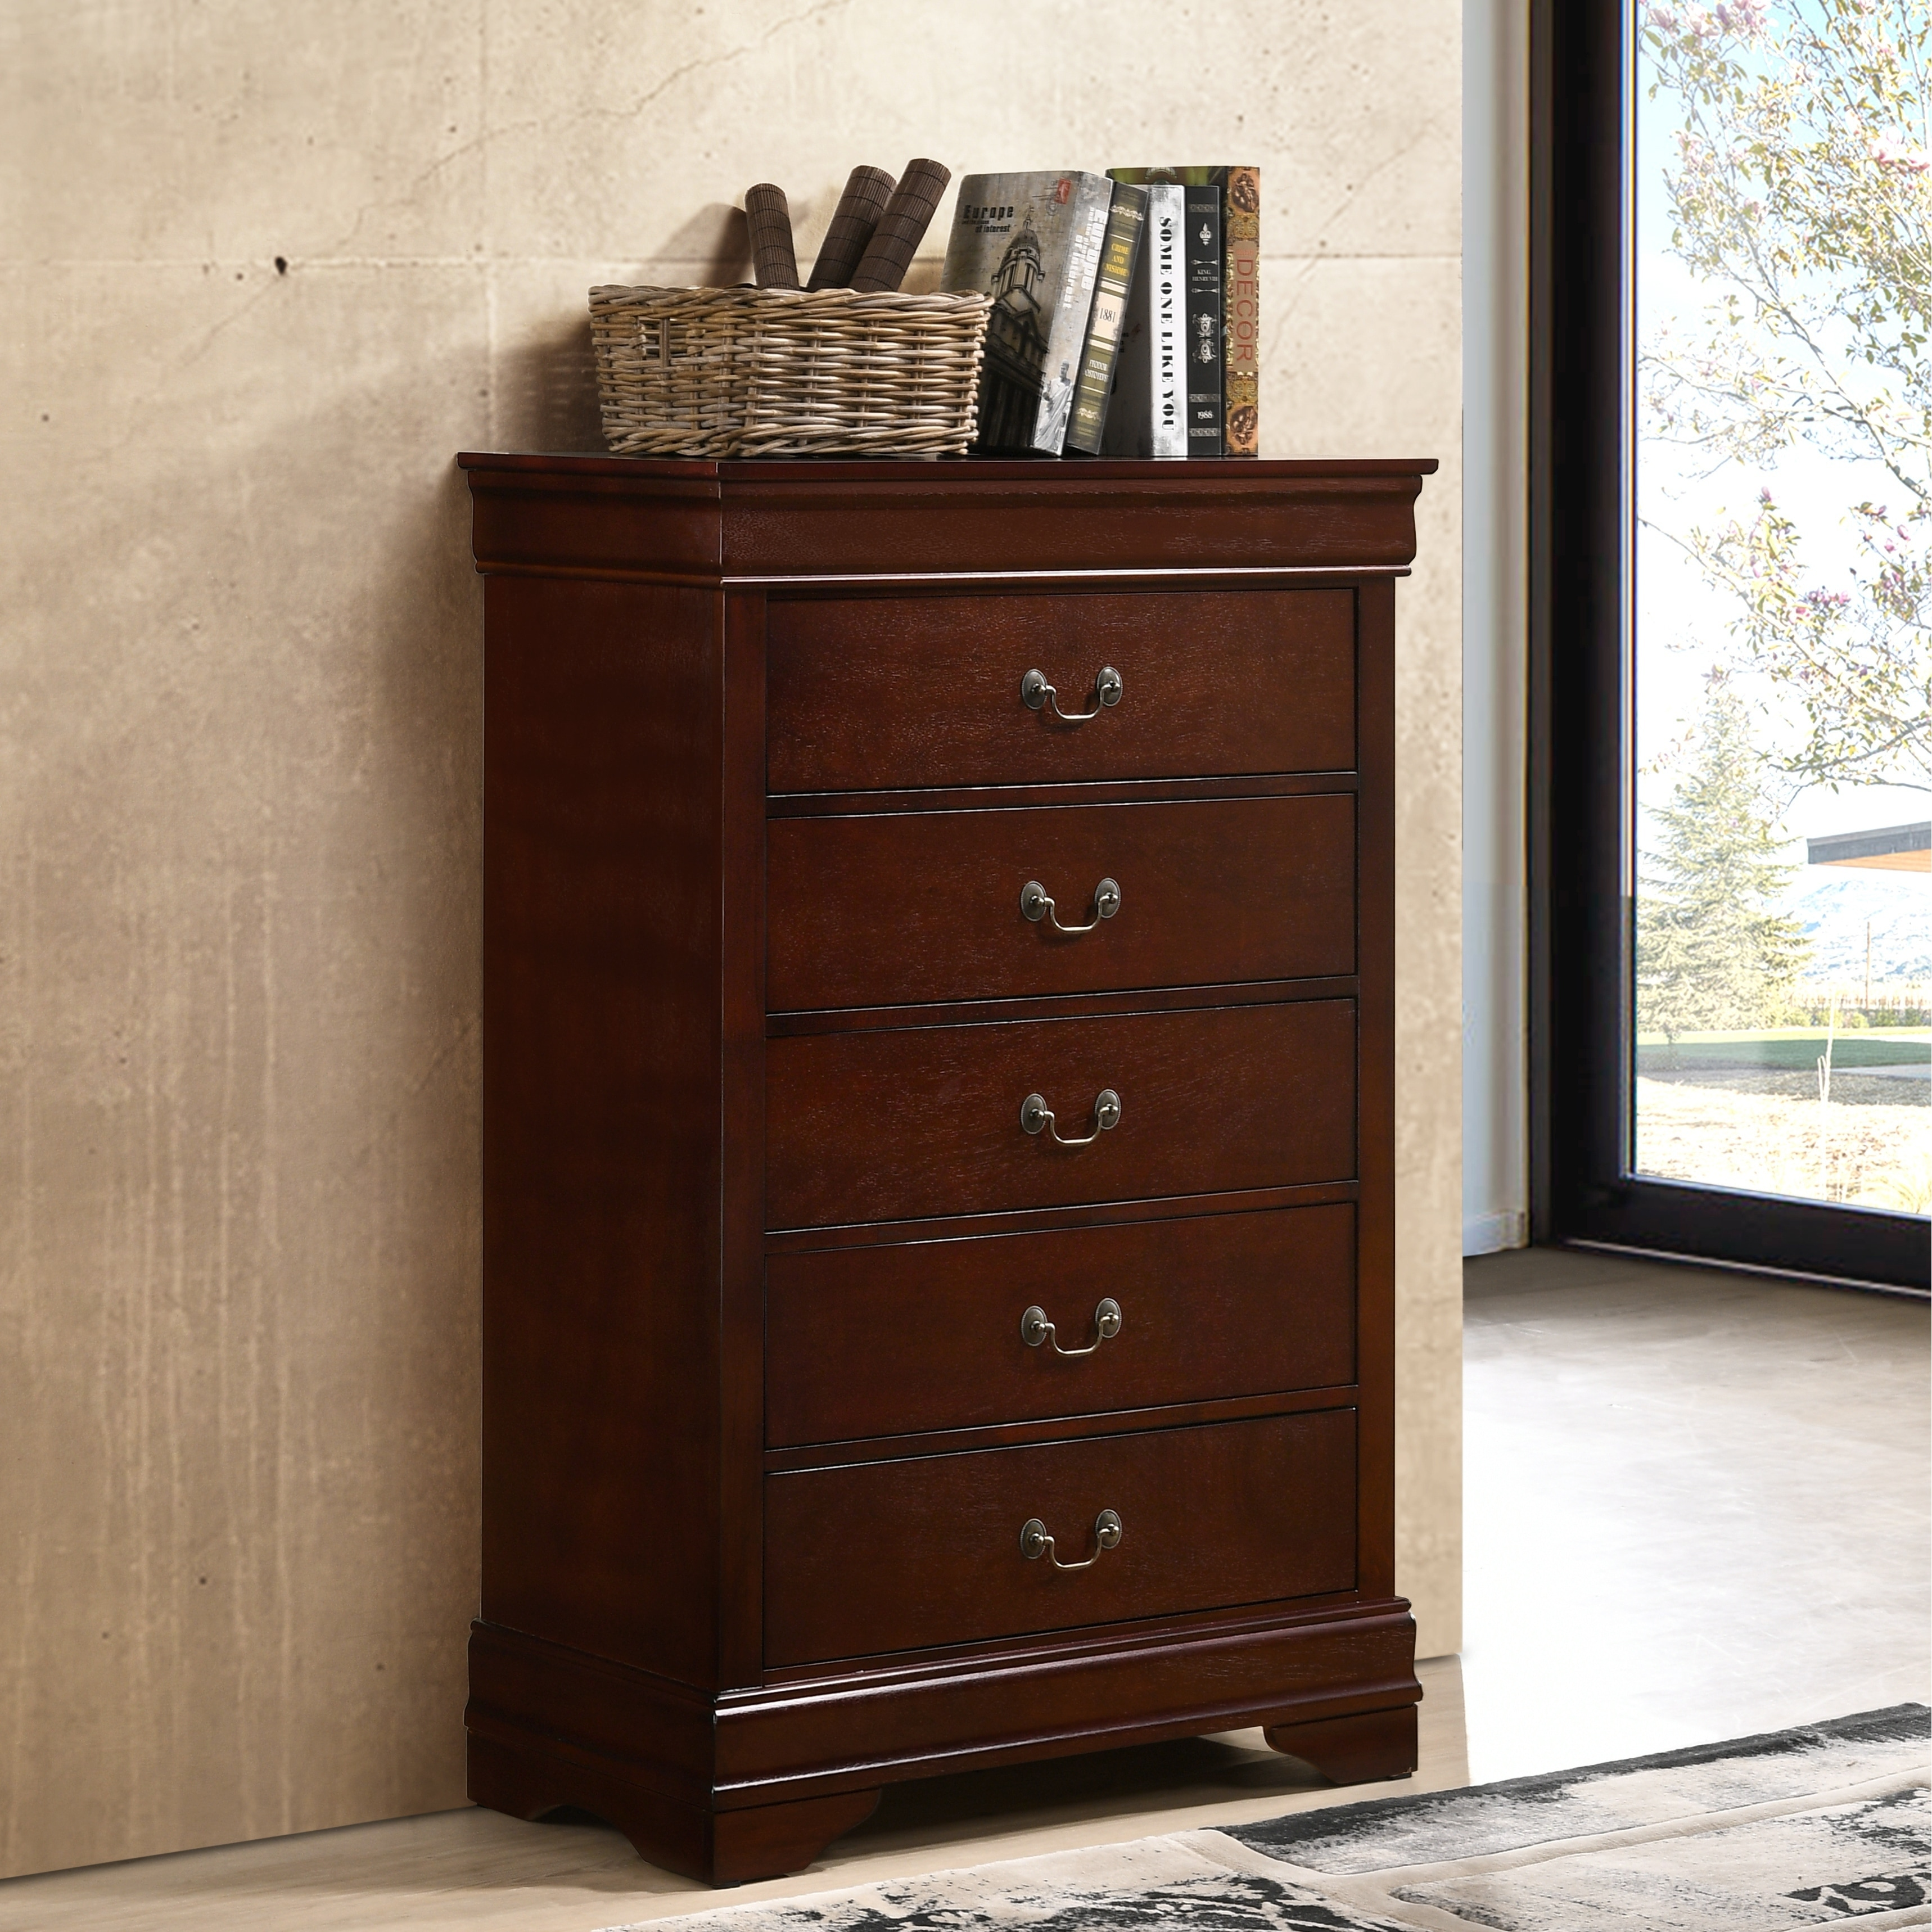 Shop isola louis philippe style cherry finish fully assembled wood chest free shipping today overstock com 22423911